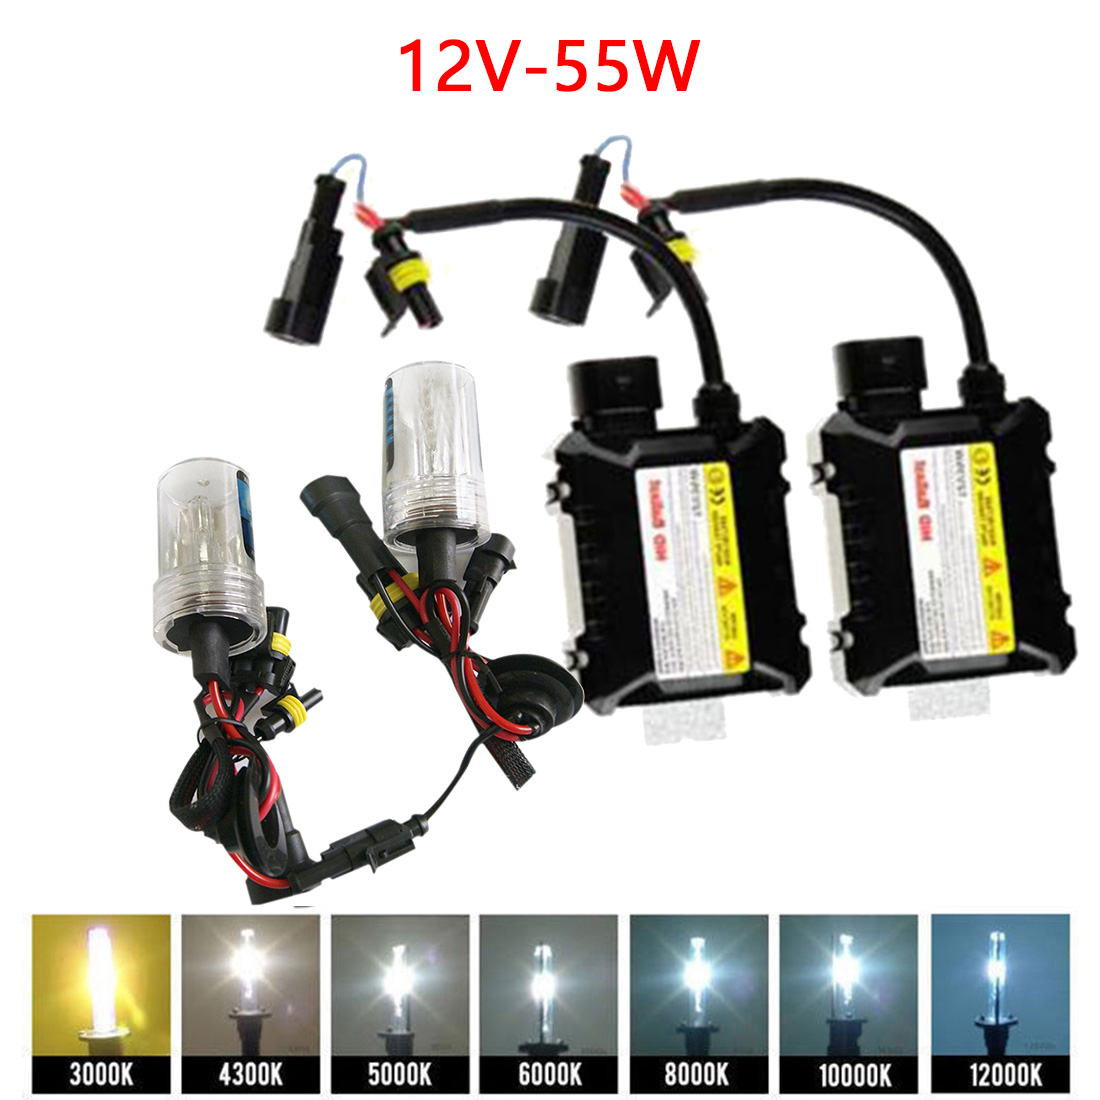 Tonewan New H7 Xenon HID Kit 55W H1 H3 H4 H8 H9 H11 9005 HB3 9006 HB4 881 H27 lamp for car headlight car styling xenon H7 car 50w 5600lm led headlight canbus kit for 9006 hb4 low beam xenon white replace hid 9005 hb3 9006 hb4 h7 h8 h11 available